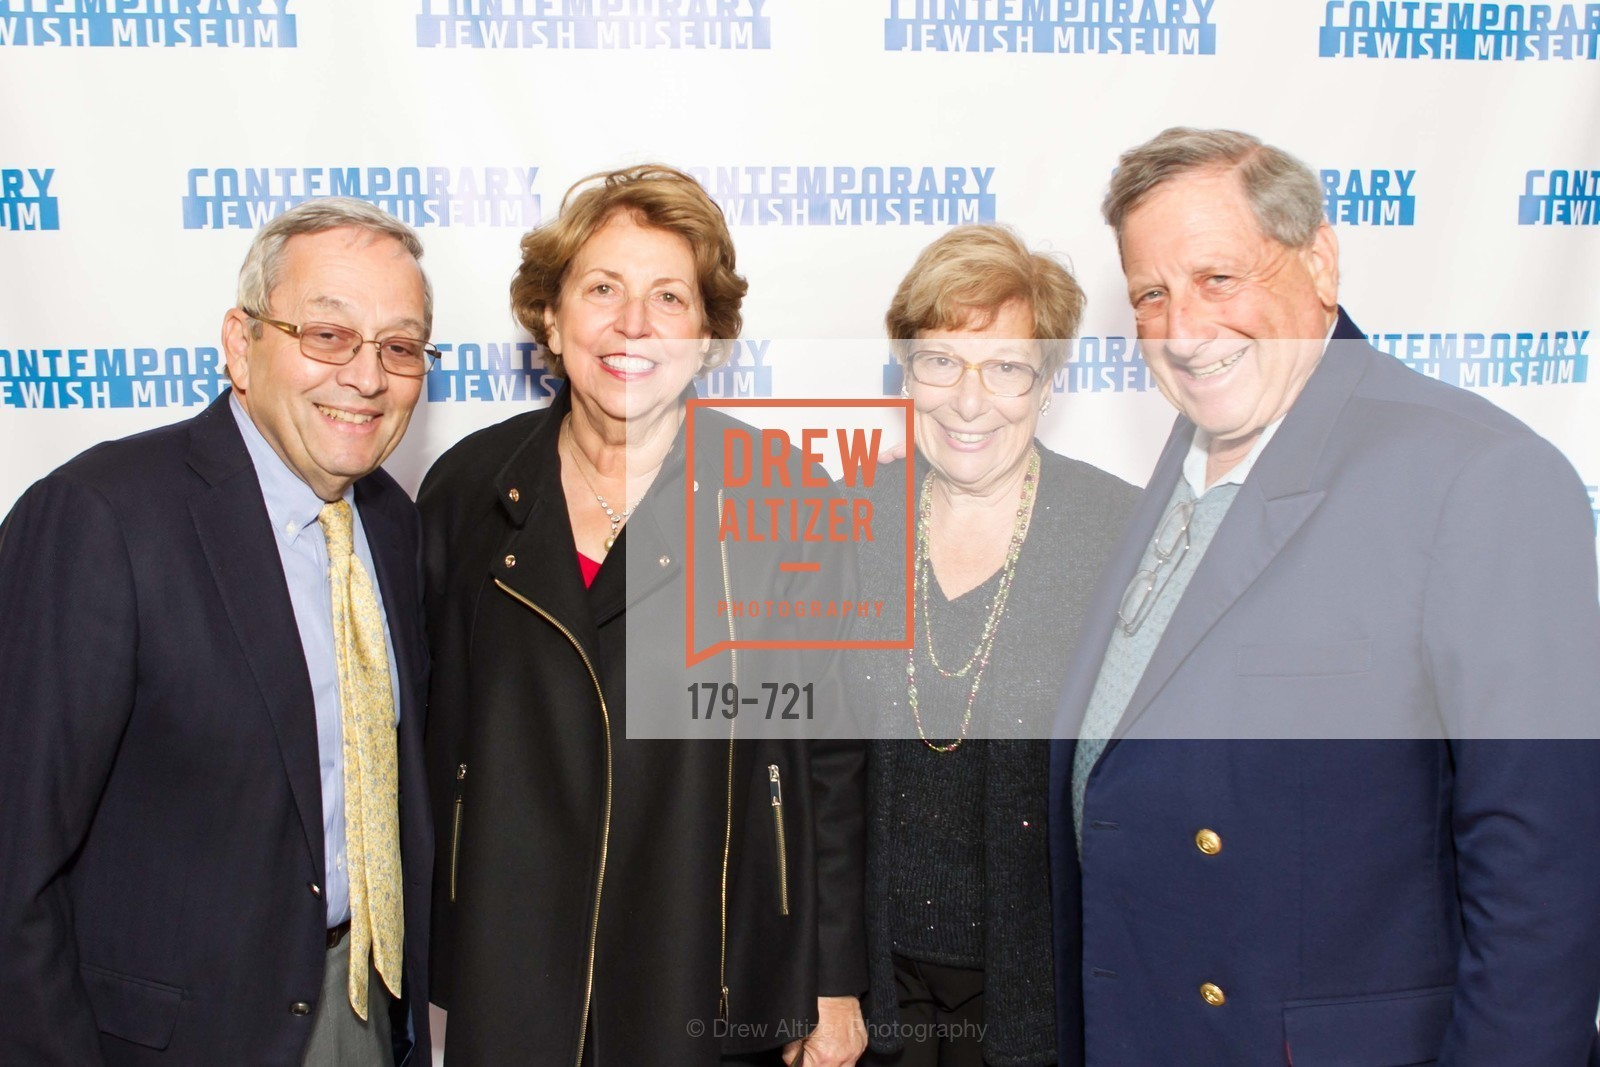 Barry Sherman, Carol Tesler, Esther Sherman, Bob Tesler, The 2015 Dorothy Saxe Invitational Celebration at the JEWISH MUSEUM, US, May 12th, 2015,Drew Altizer, Drew Altizer Photography, full-service agency, private events, San Francisco photographer, photographer california